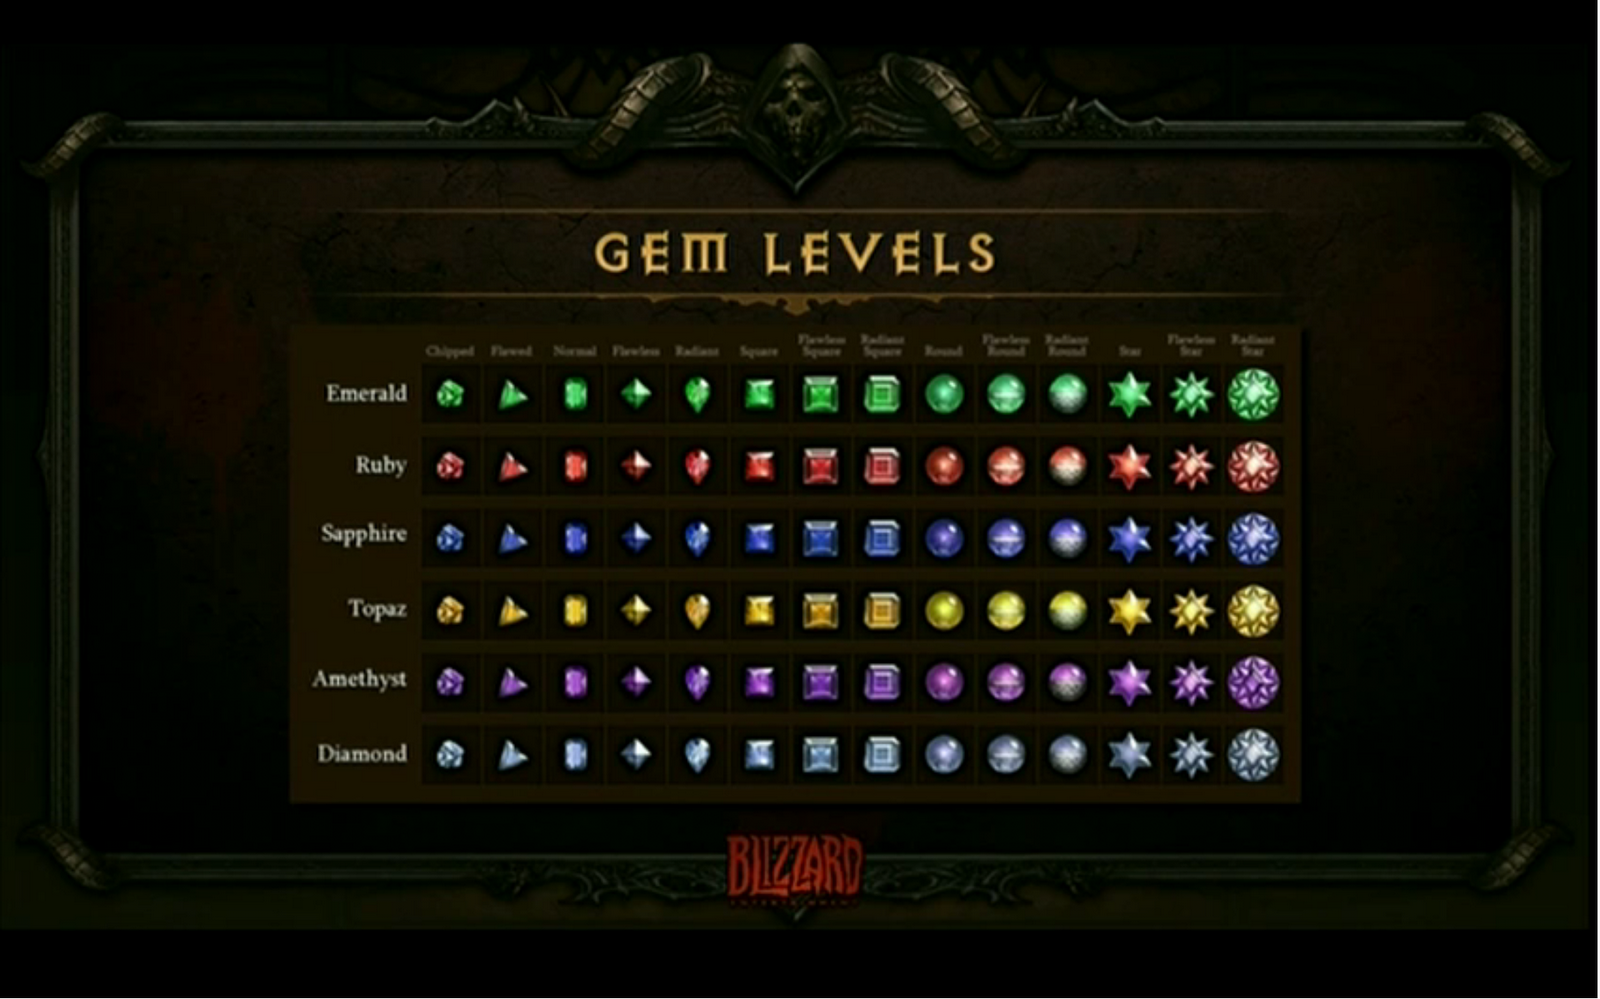 Diablo 3 Gem Levels